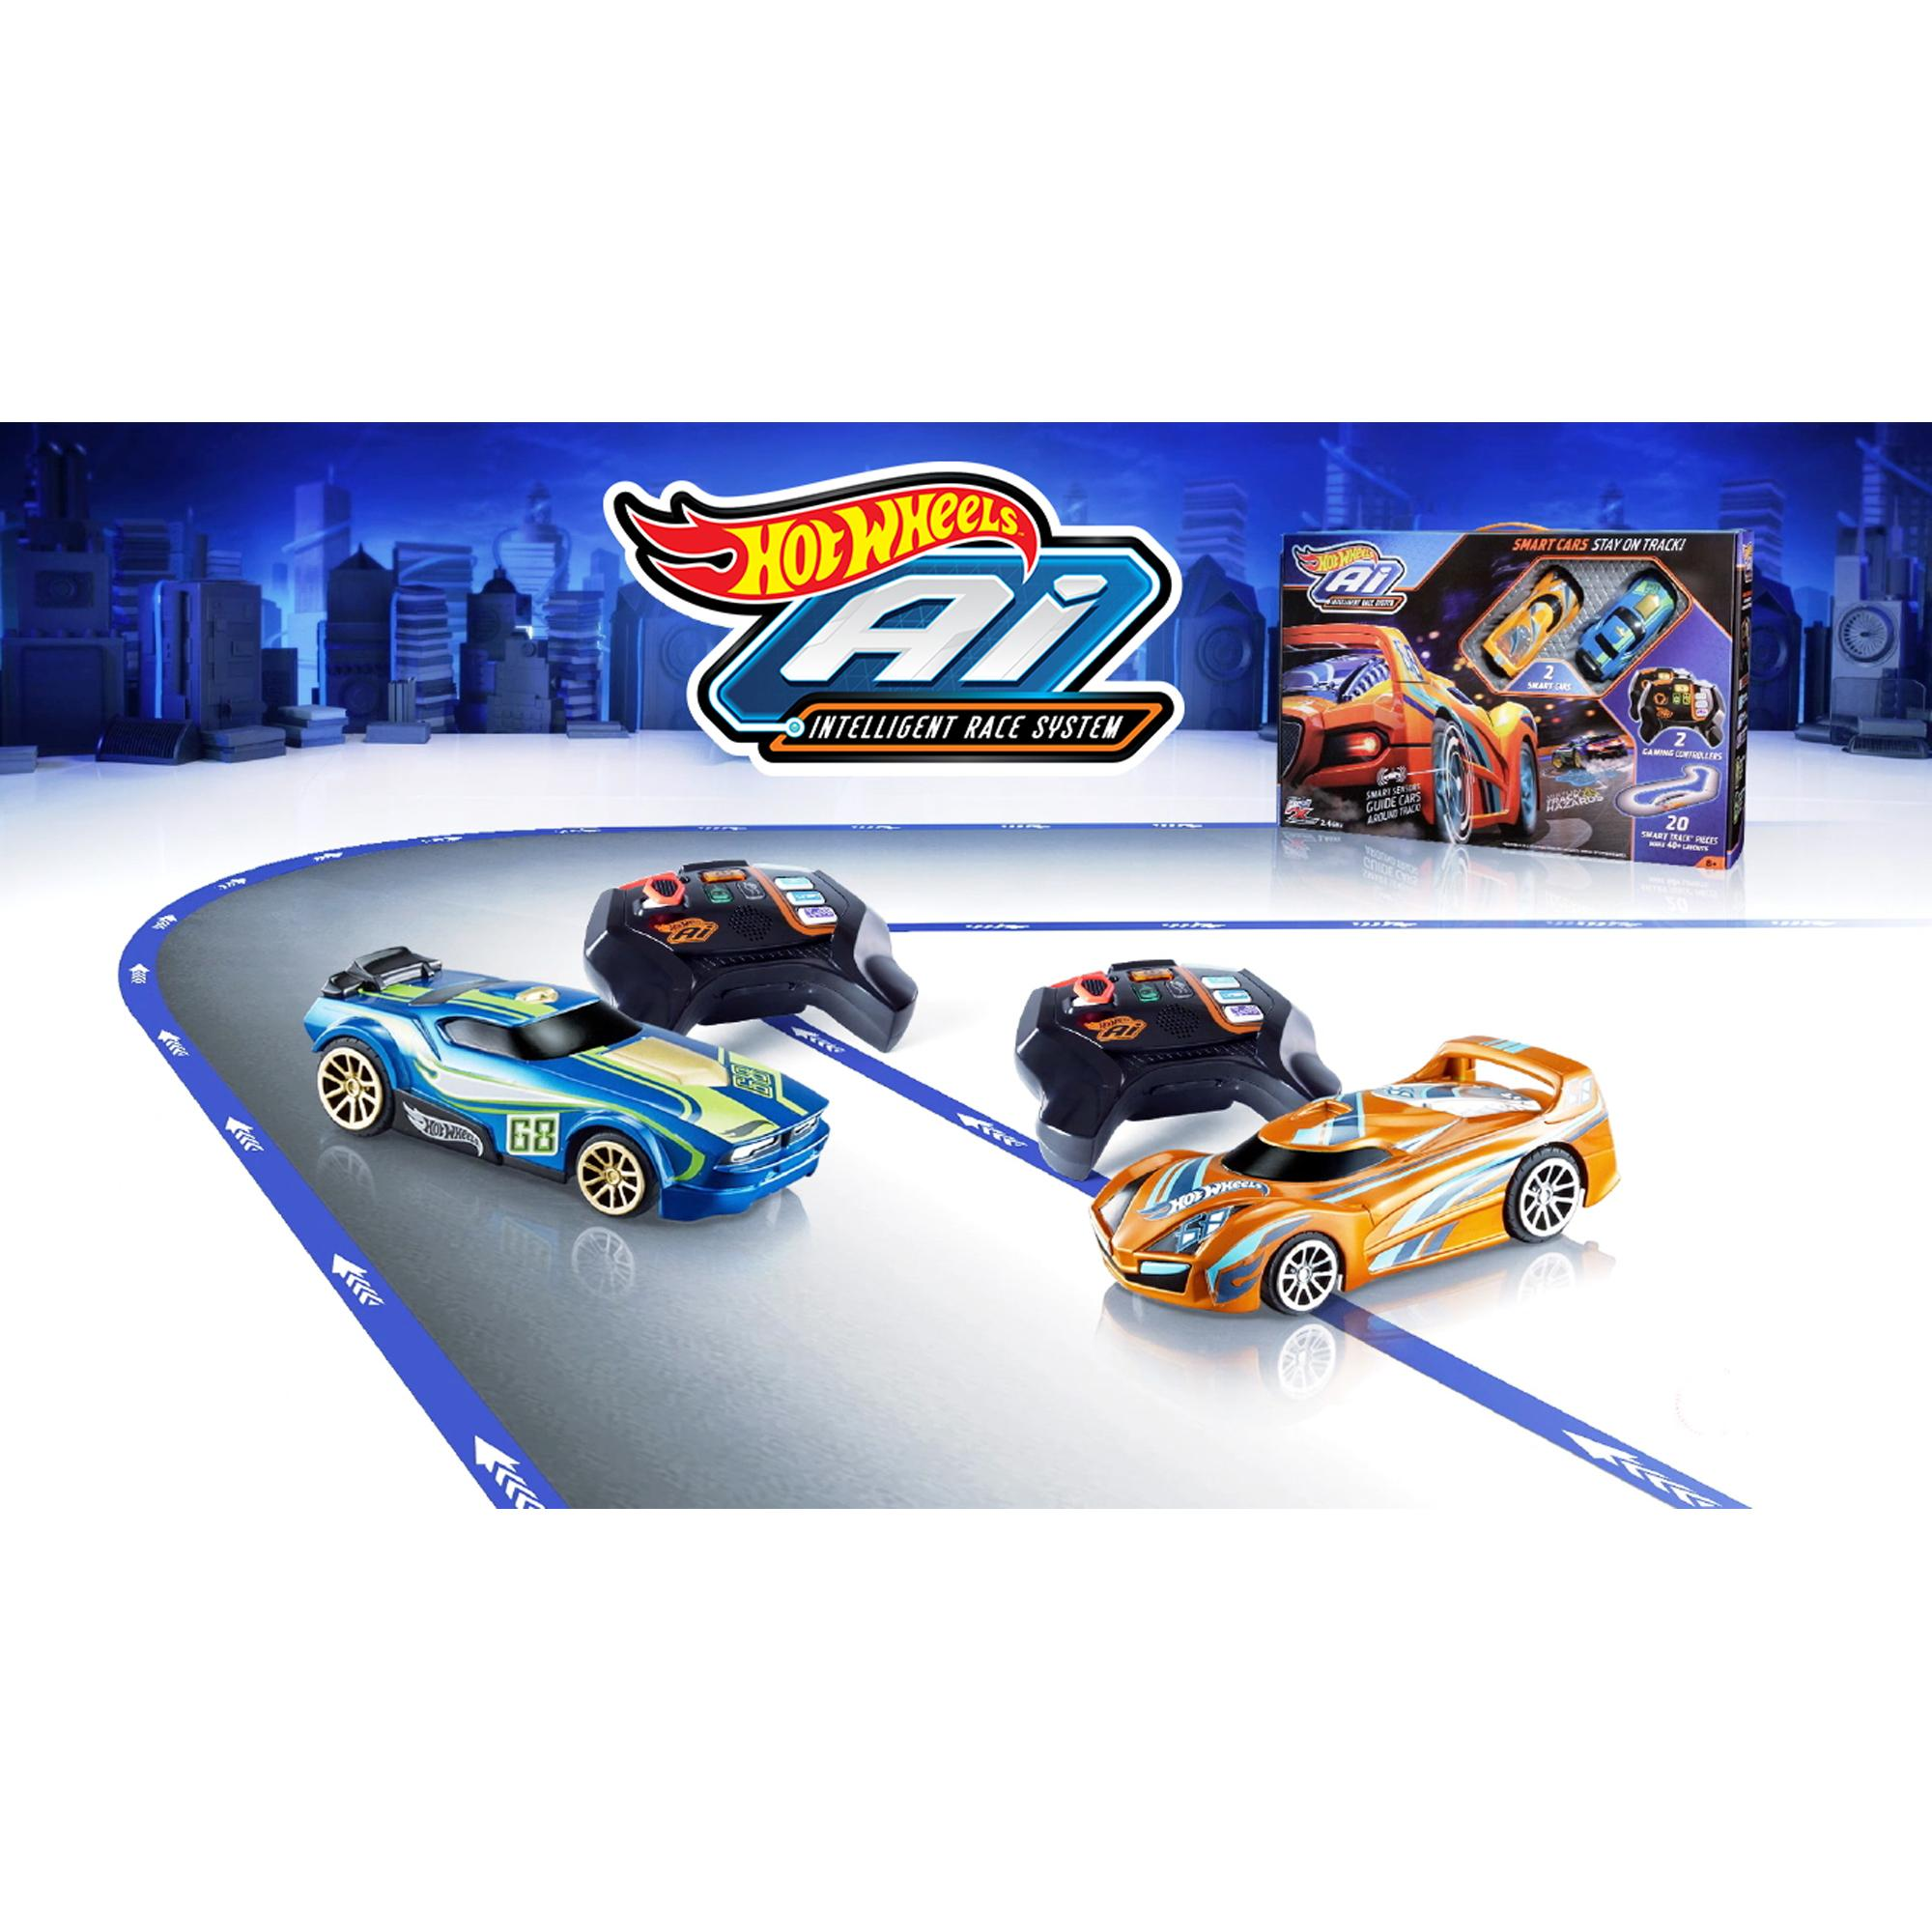 hot wheels ai intelligent race system starter kit toys games. Black Bedroom Furniture Sets. Home Design Ideas